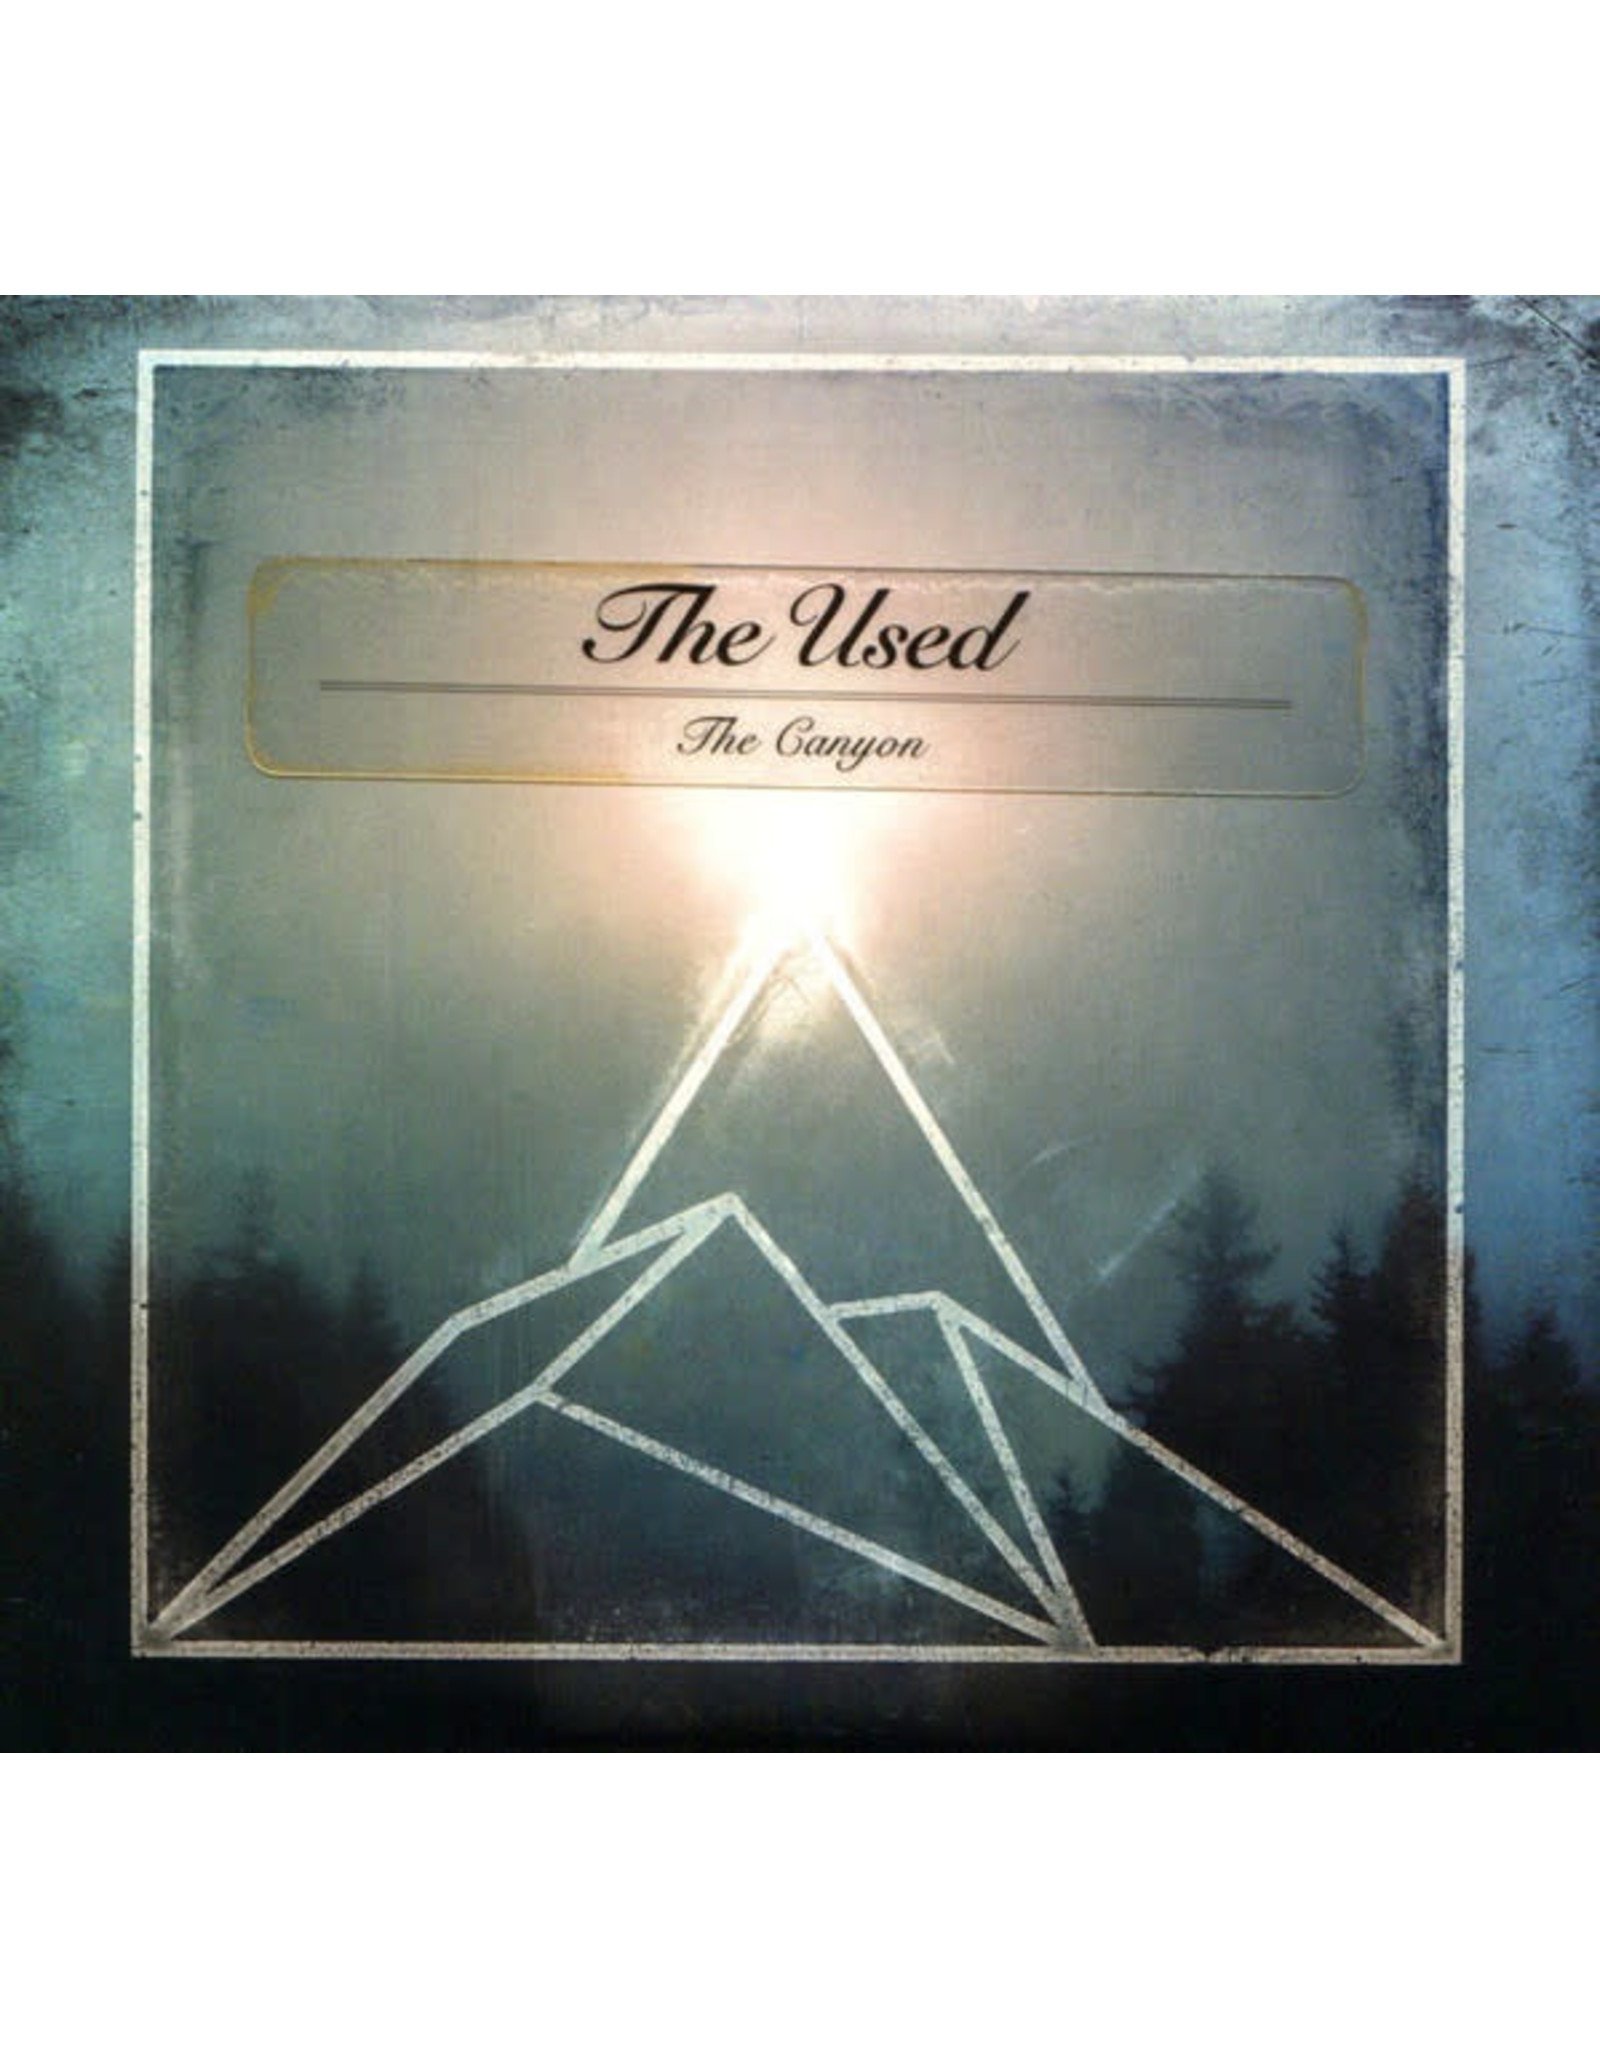 Used - The Canyon CD